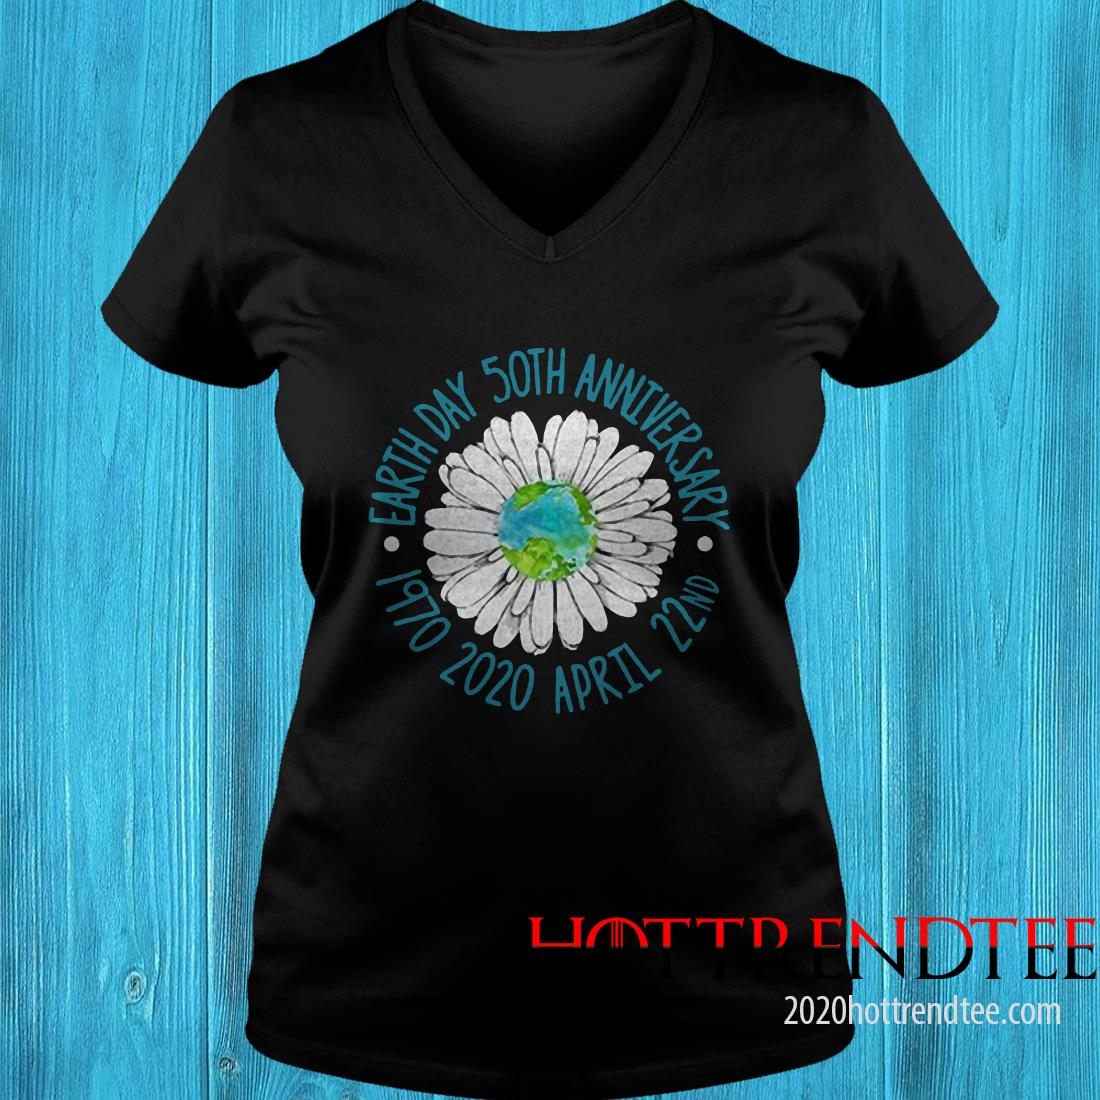 Earth Day 50Th Anniversary April 22Nd Women's T-Shirt